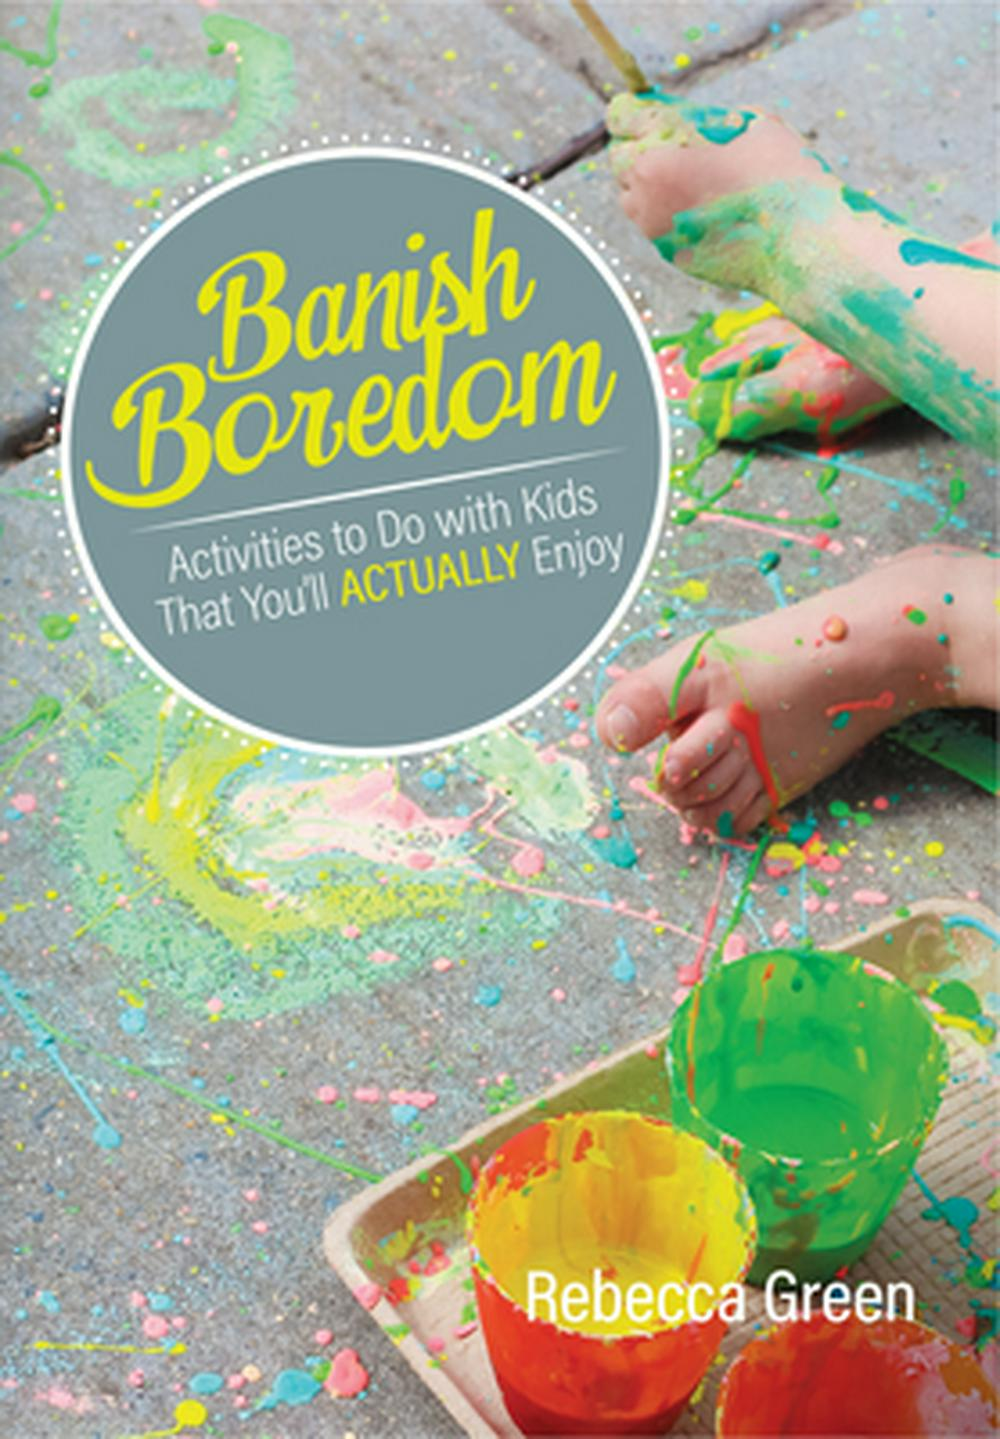 Banish Boredom: Activities to Do with Kids That You'll Actually Enjoy by Rebecca Green, ISBN: 9780876593455